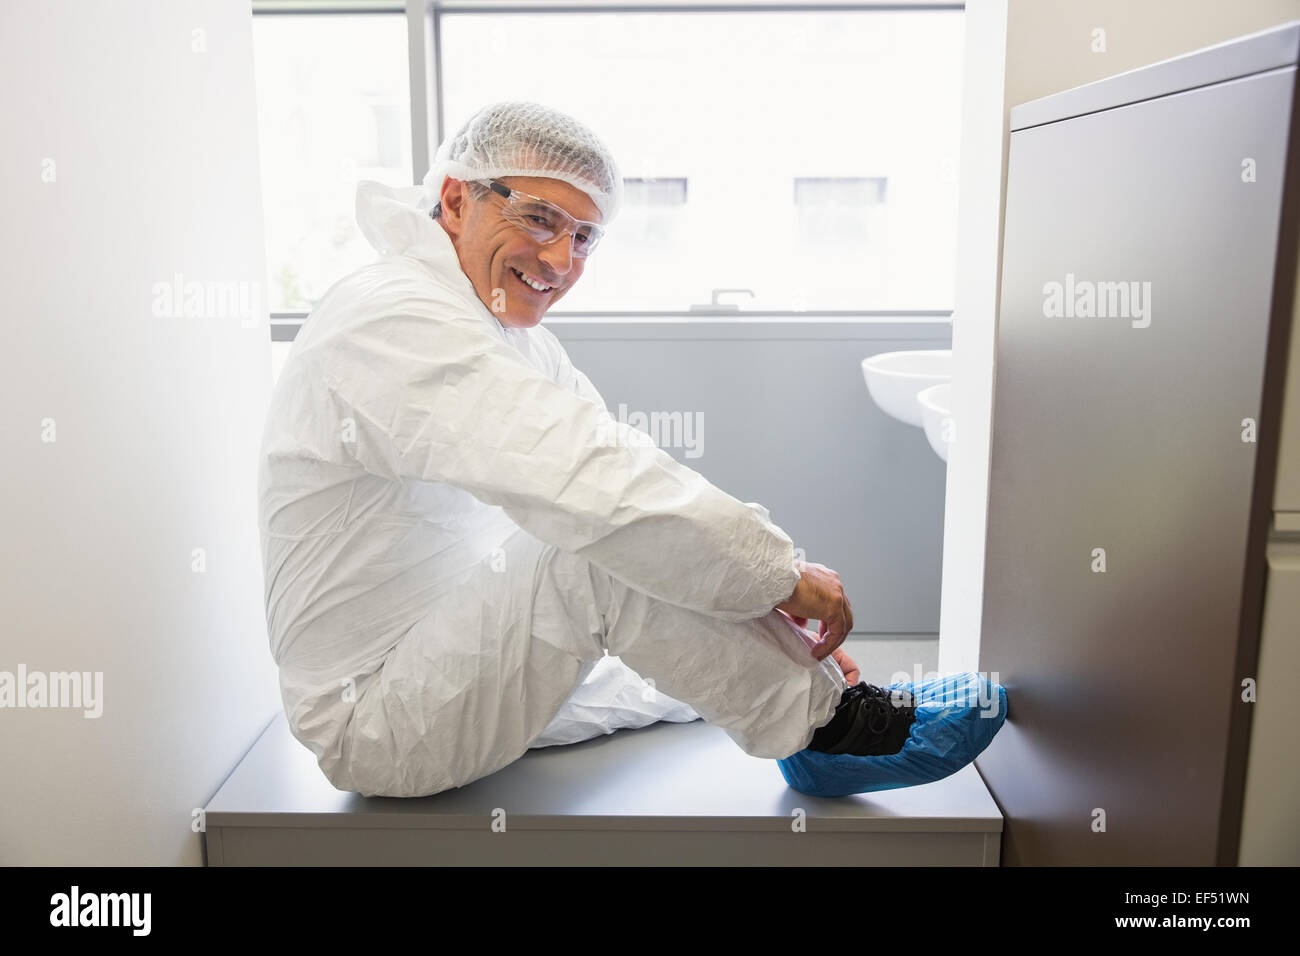 Pharmacist putting on his shoe covers Stock Photo